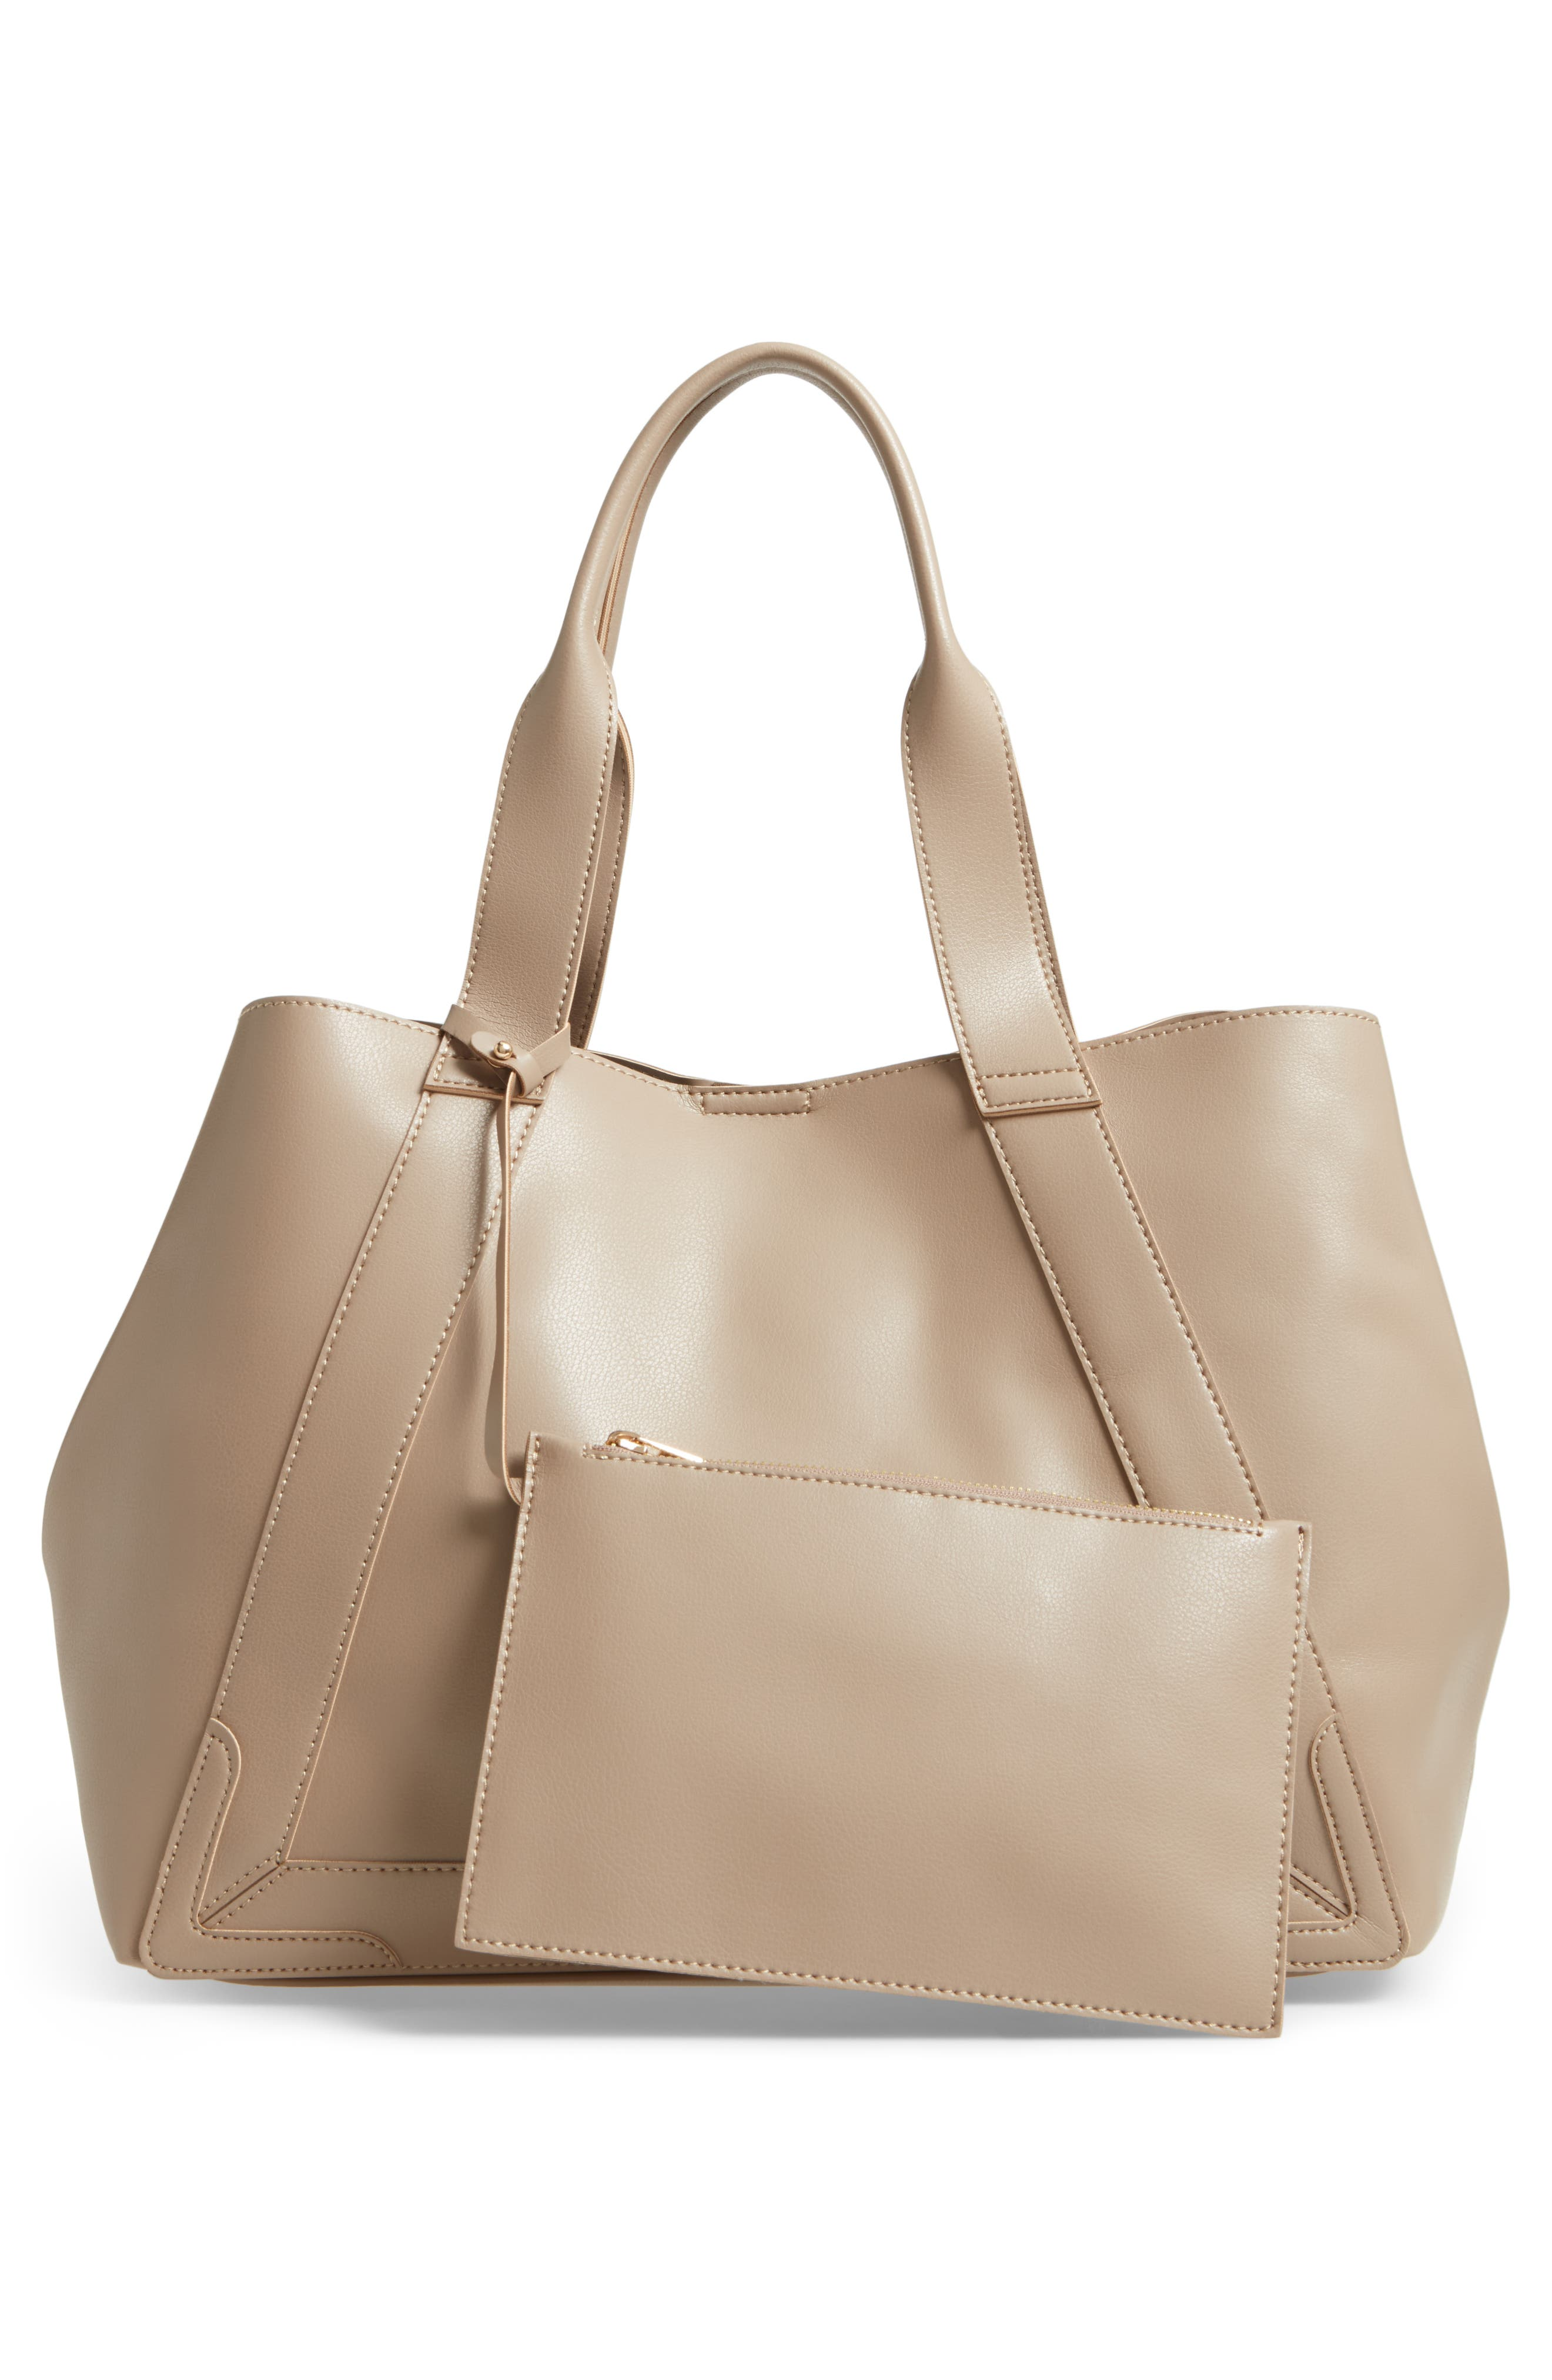 Decklan Faux Leather Tote,                             Alternate thumbnail 3, color,                             250